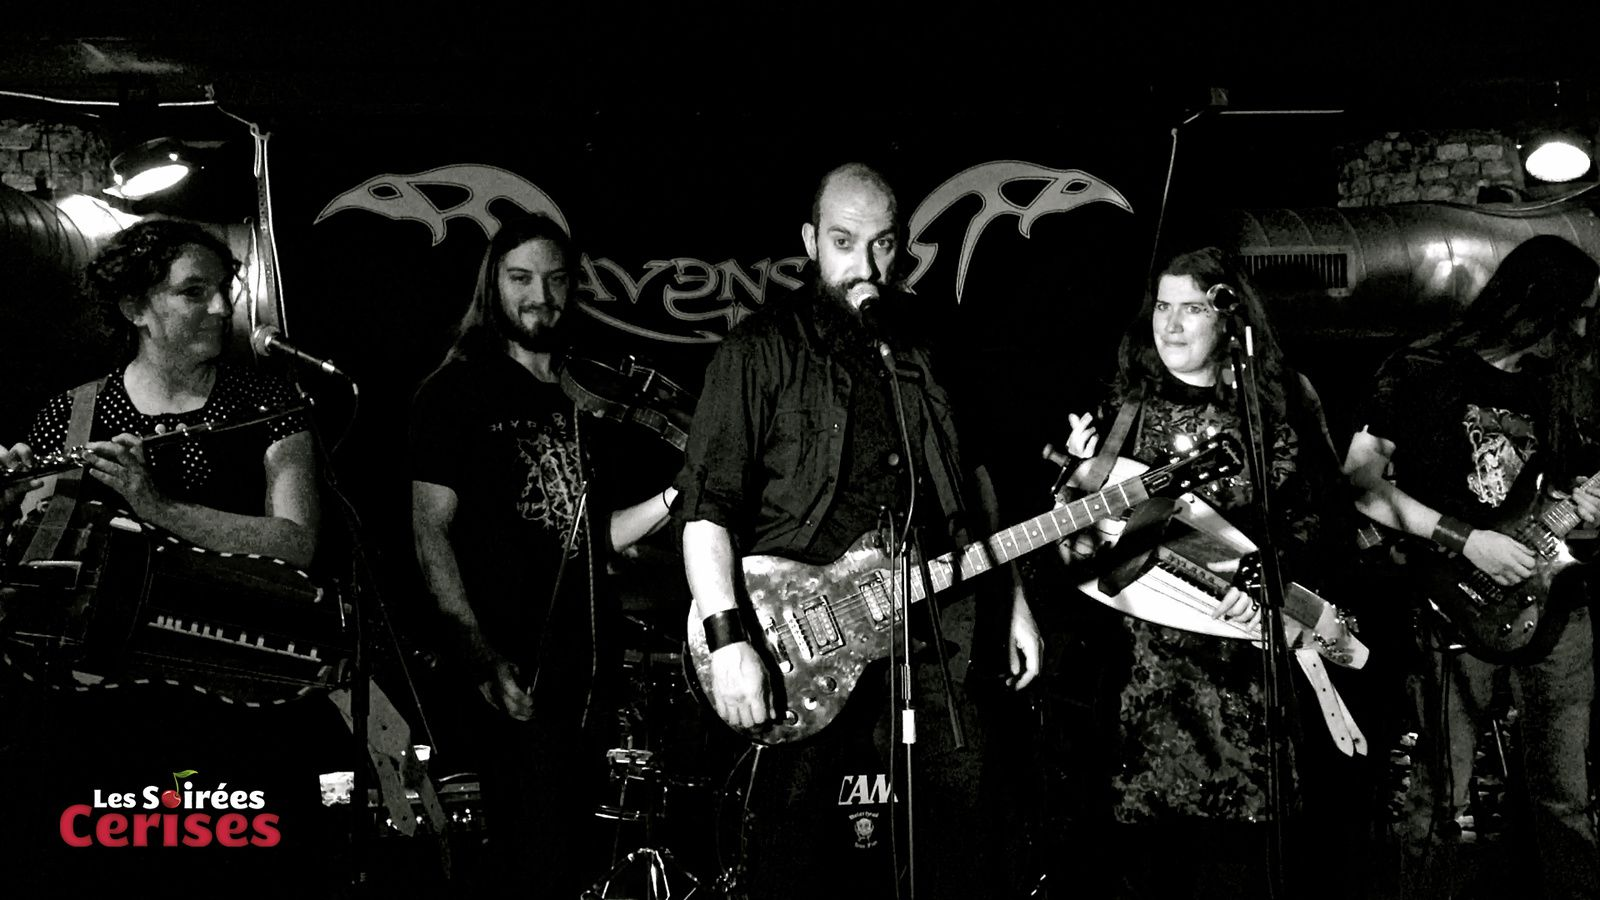 ▶ Photos / Videos - RavenscaR @ Rock Classic - 23/11/2017